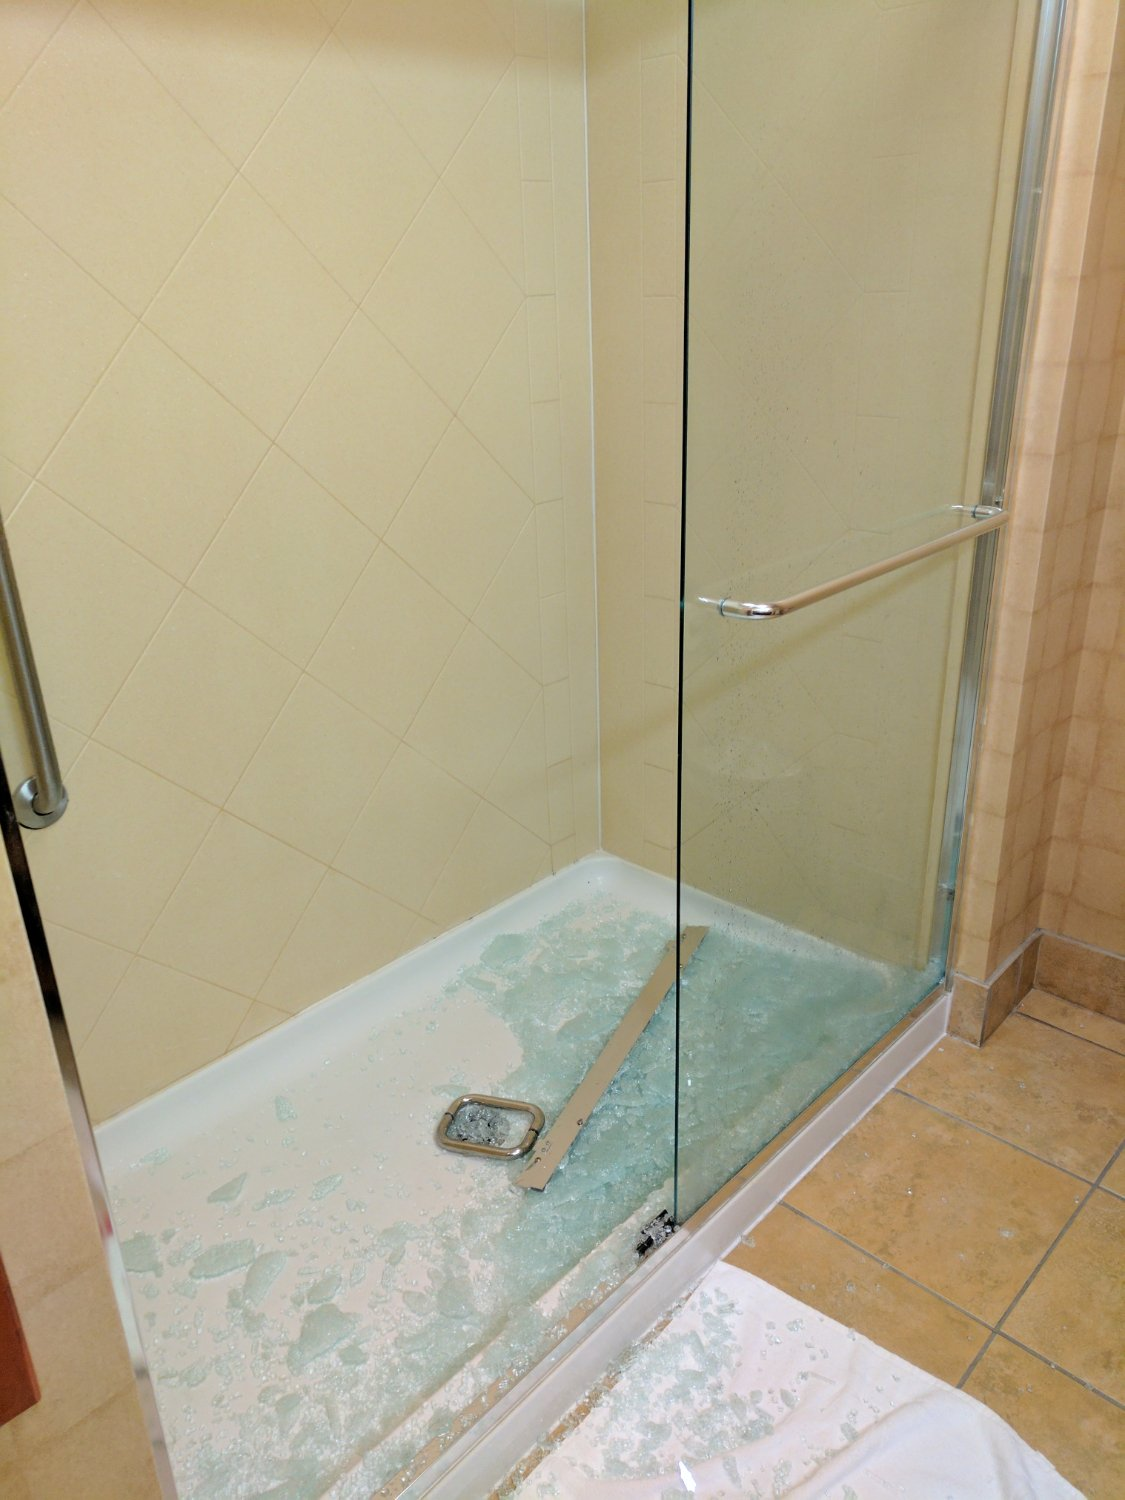 The glass shower door completely shattered. I was lucky to avoid any catastrophic injury.